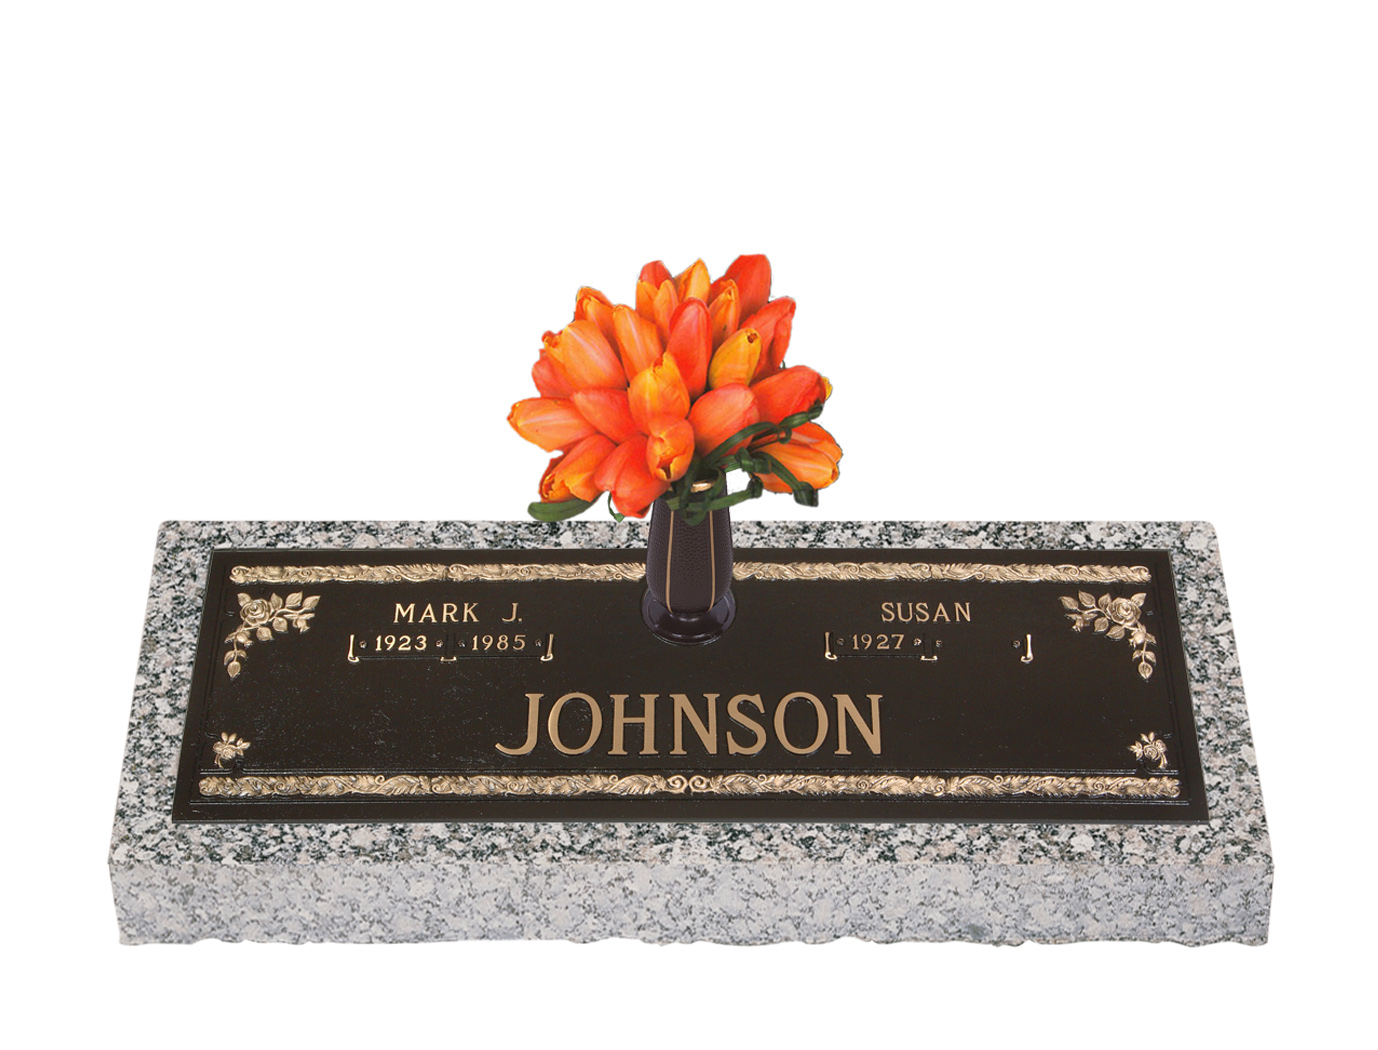 Companion bronze grave markers lovemarkers abbey rose with vase reviewsmspy